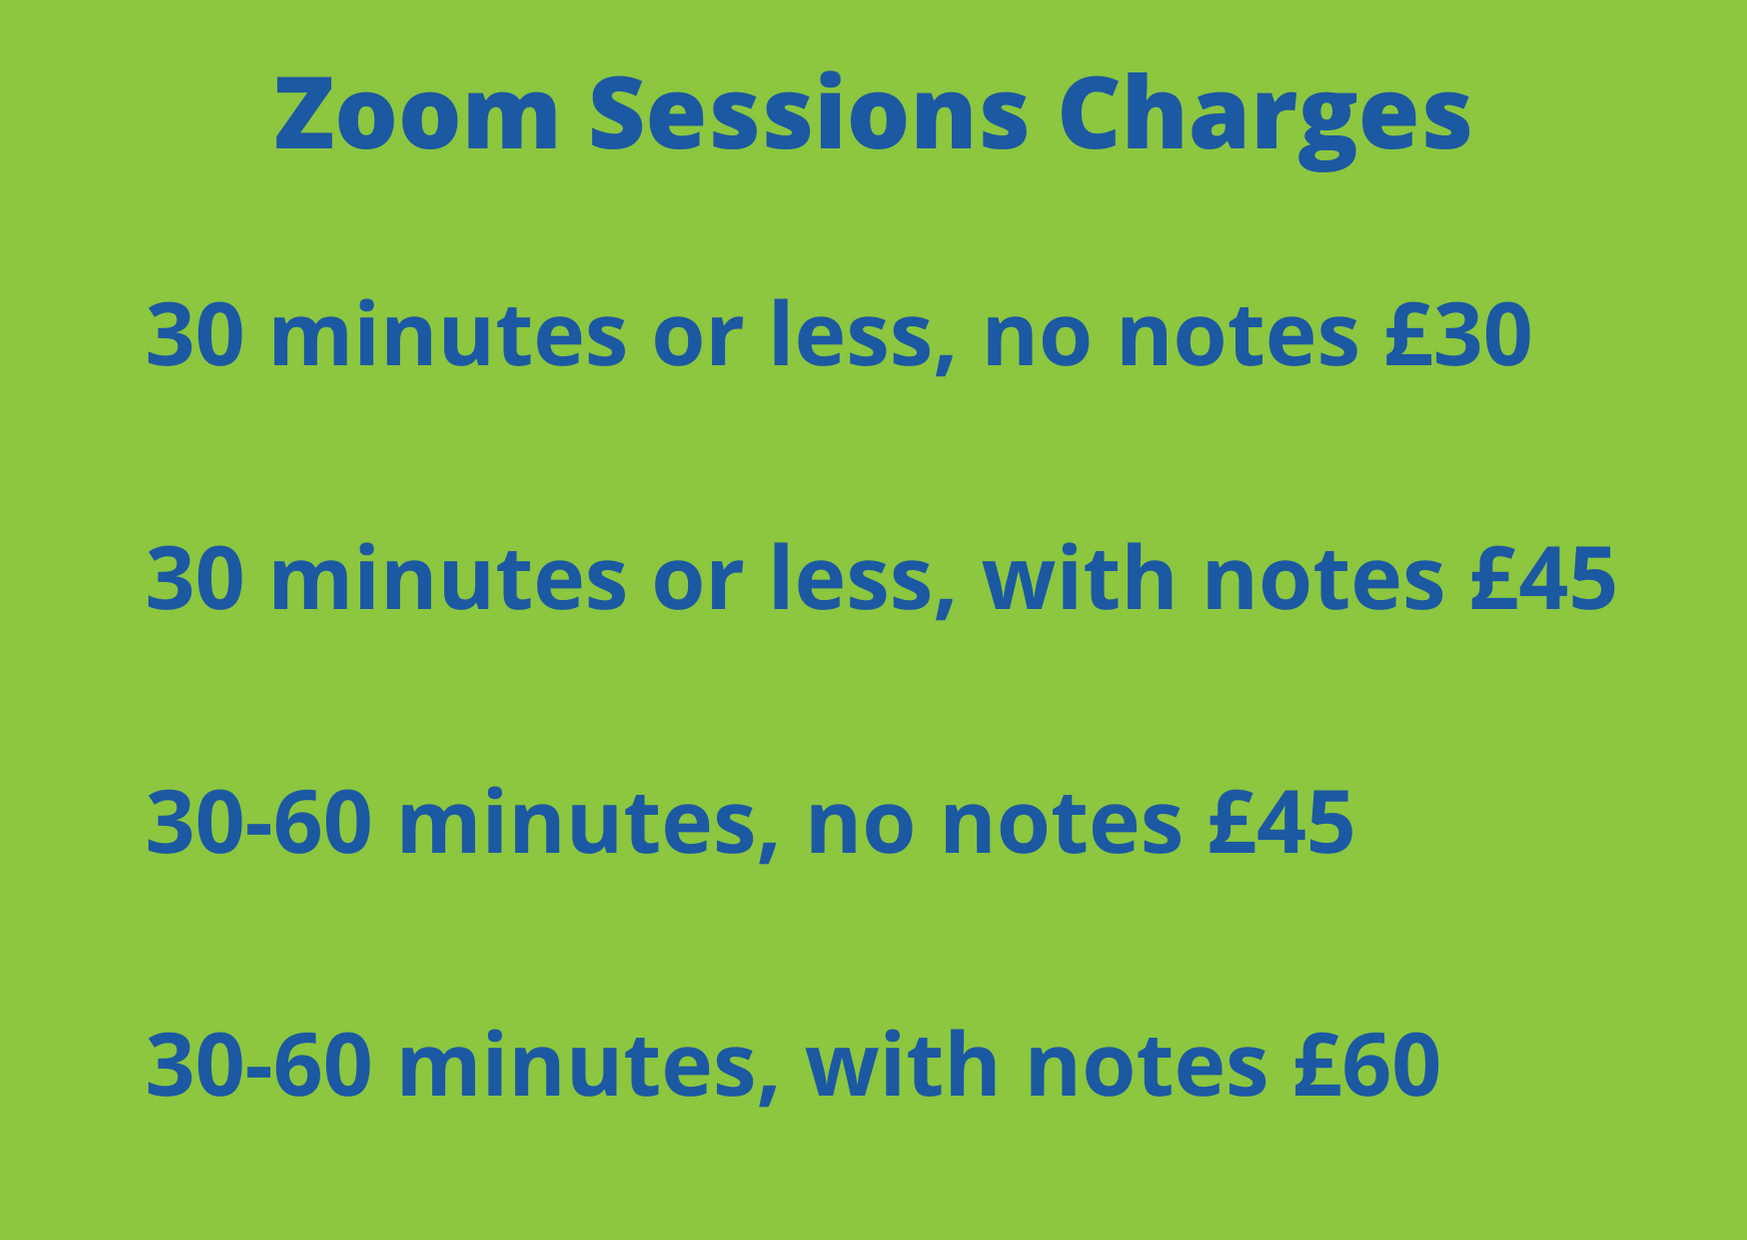 Jigsaw Zoom Charges